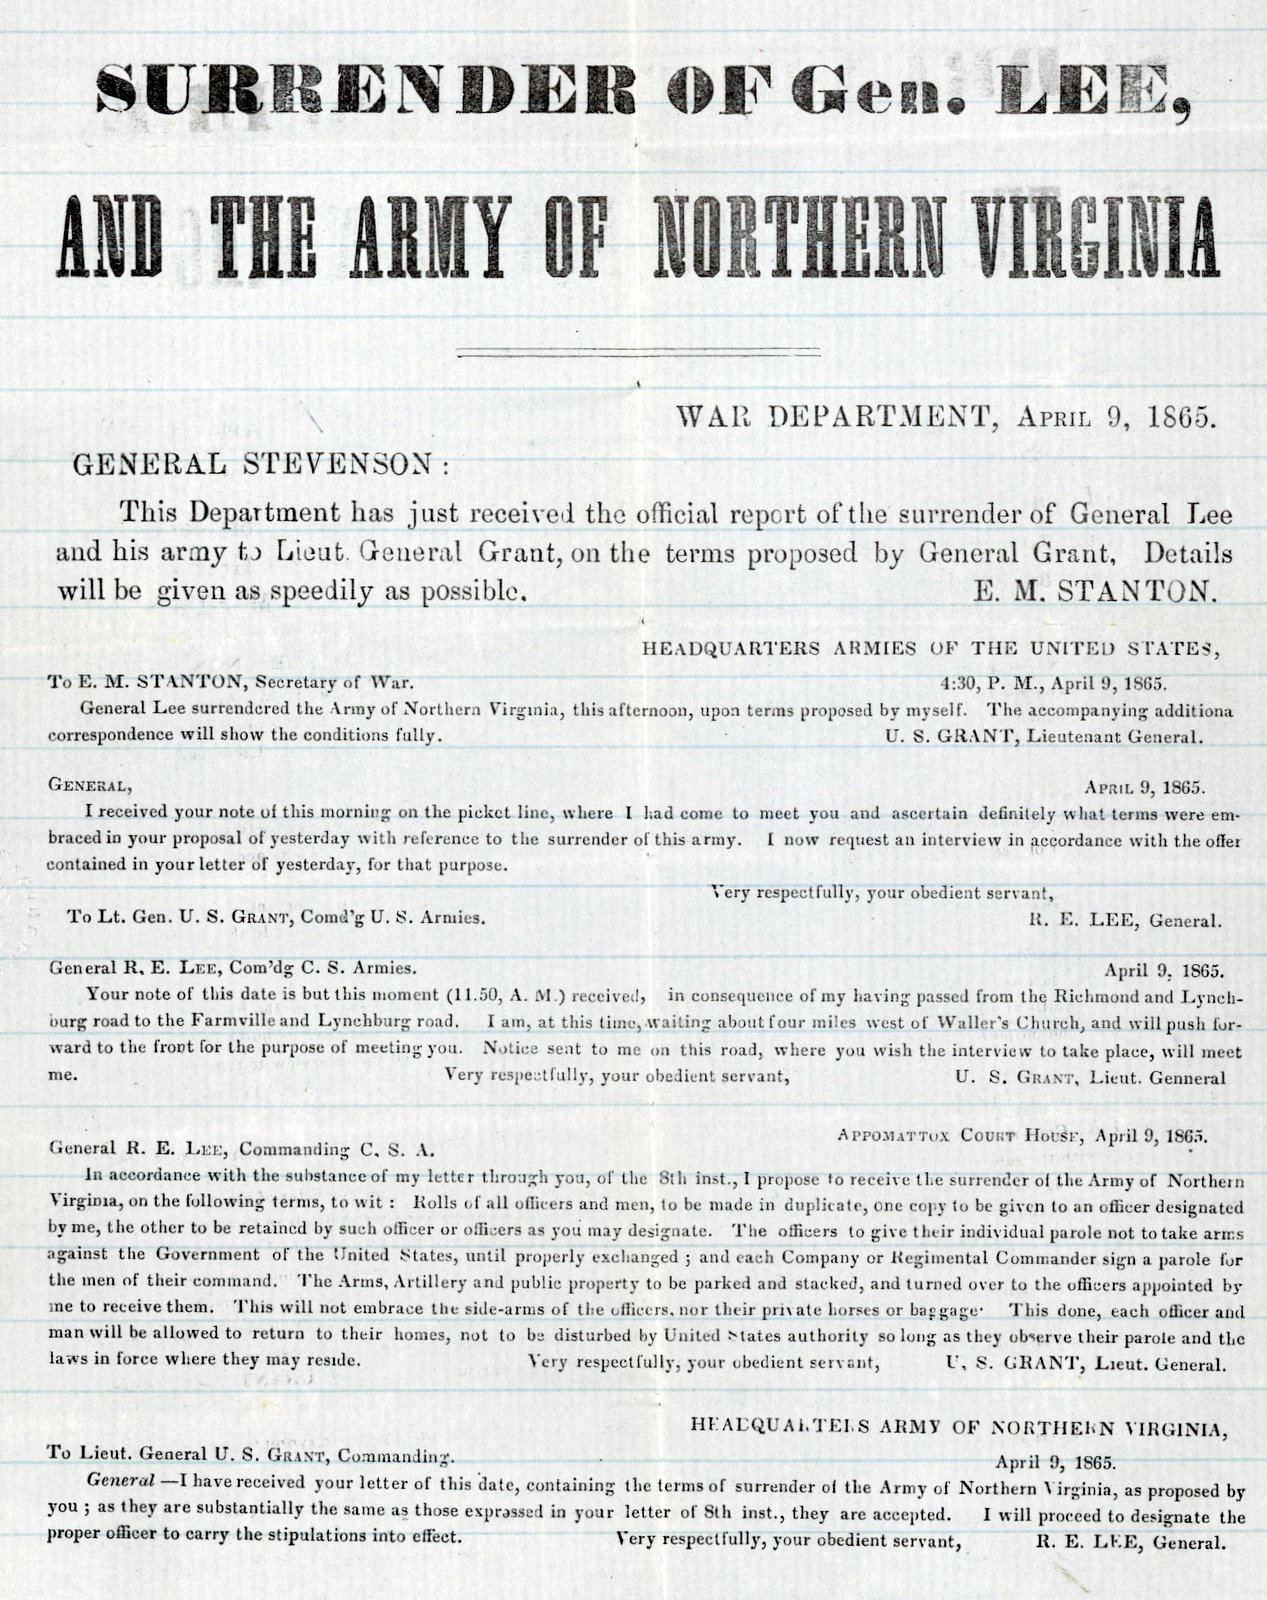 Surrender of Gen. Lee and the Army of Northern Virginia - April 9, 1865